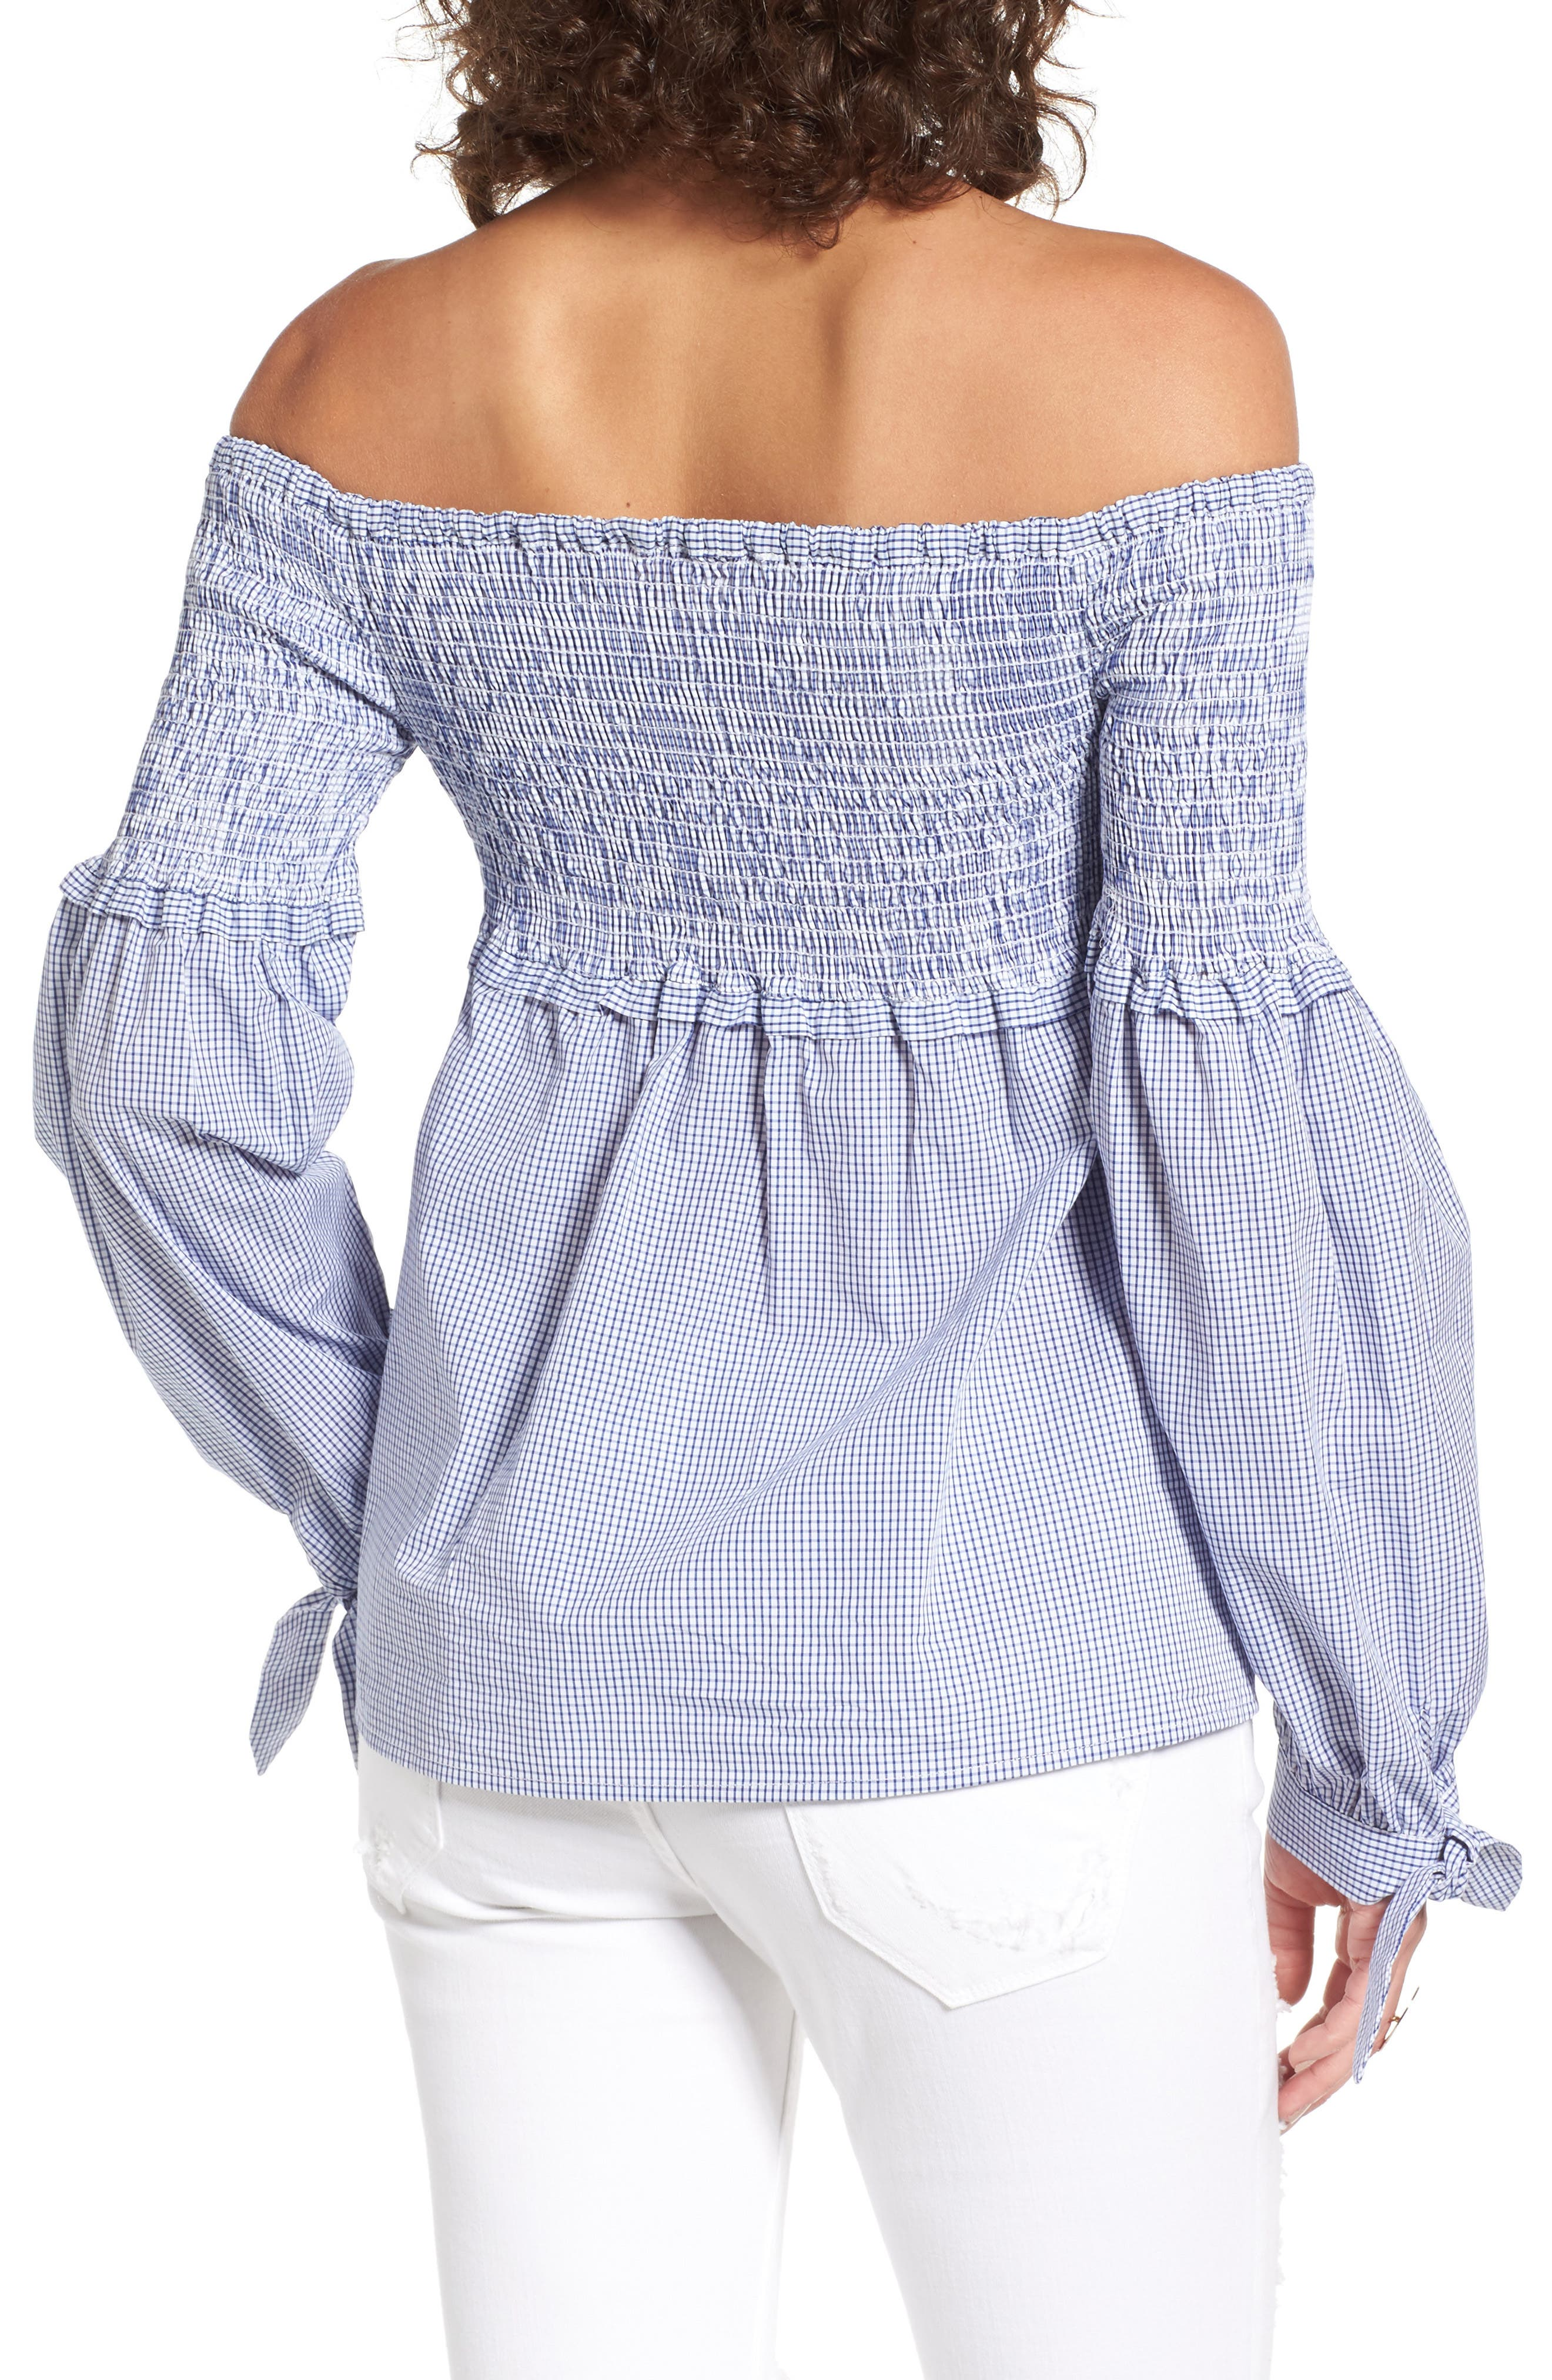 Libby Smocked Off the Shoulder Top,                             Alternate thumbnail 2, color,                             403